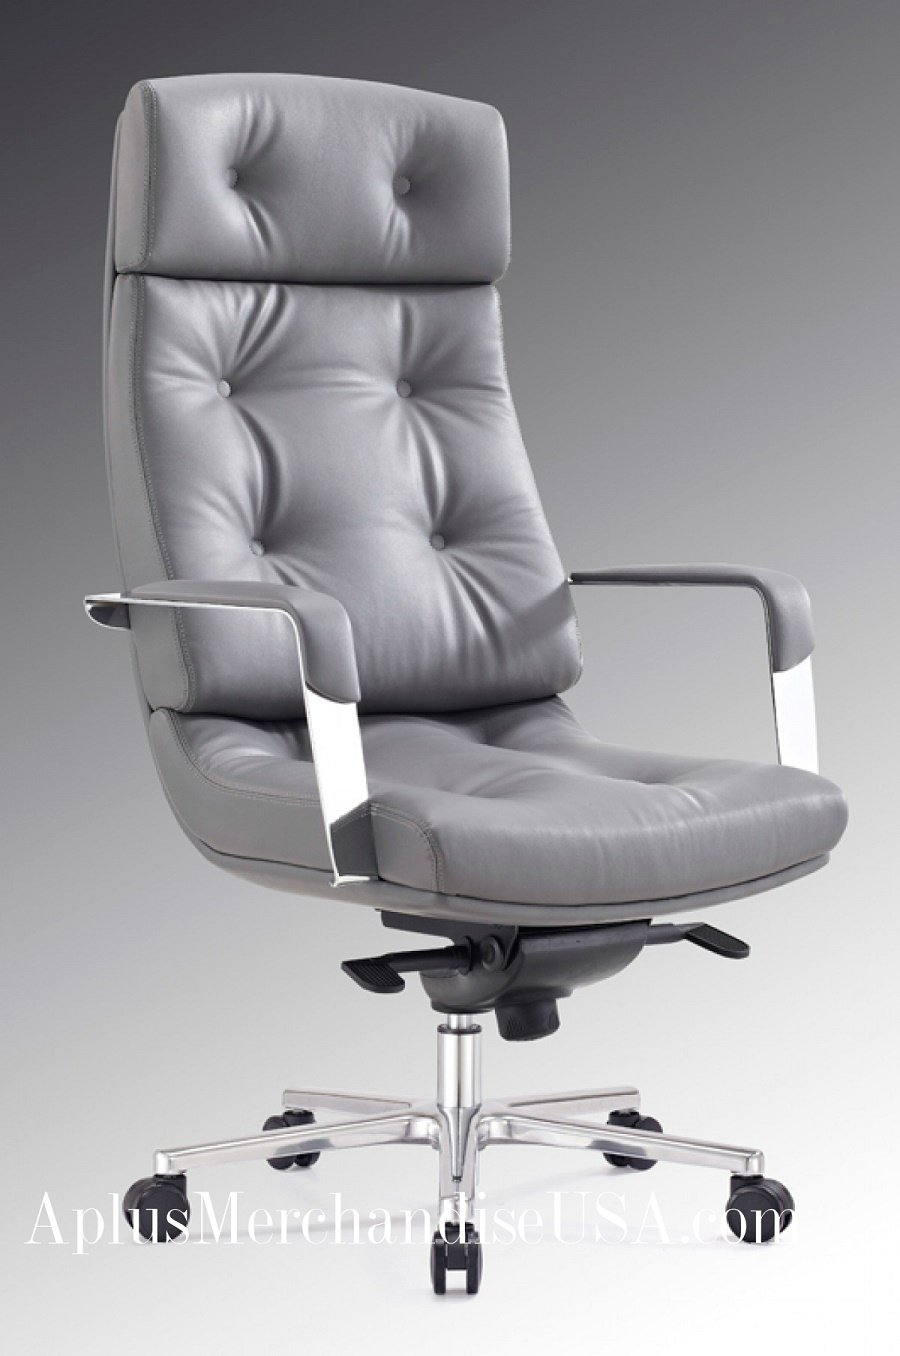 Gray Chair For the Office 4-Position Locking & Adjustable Height Leatherette Modrest Forbes